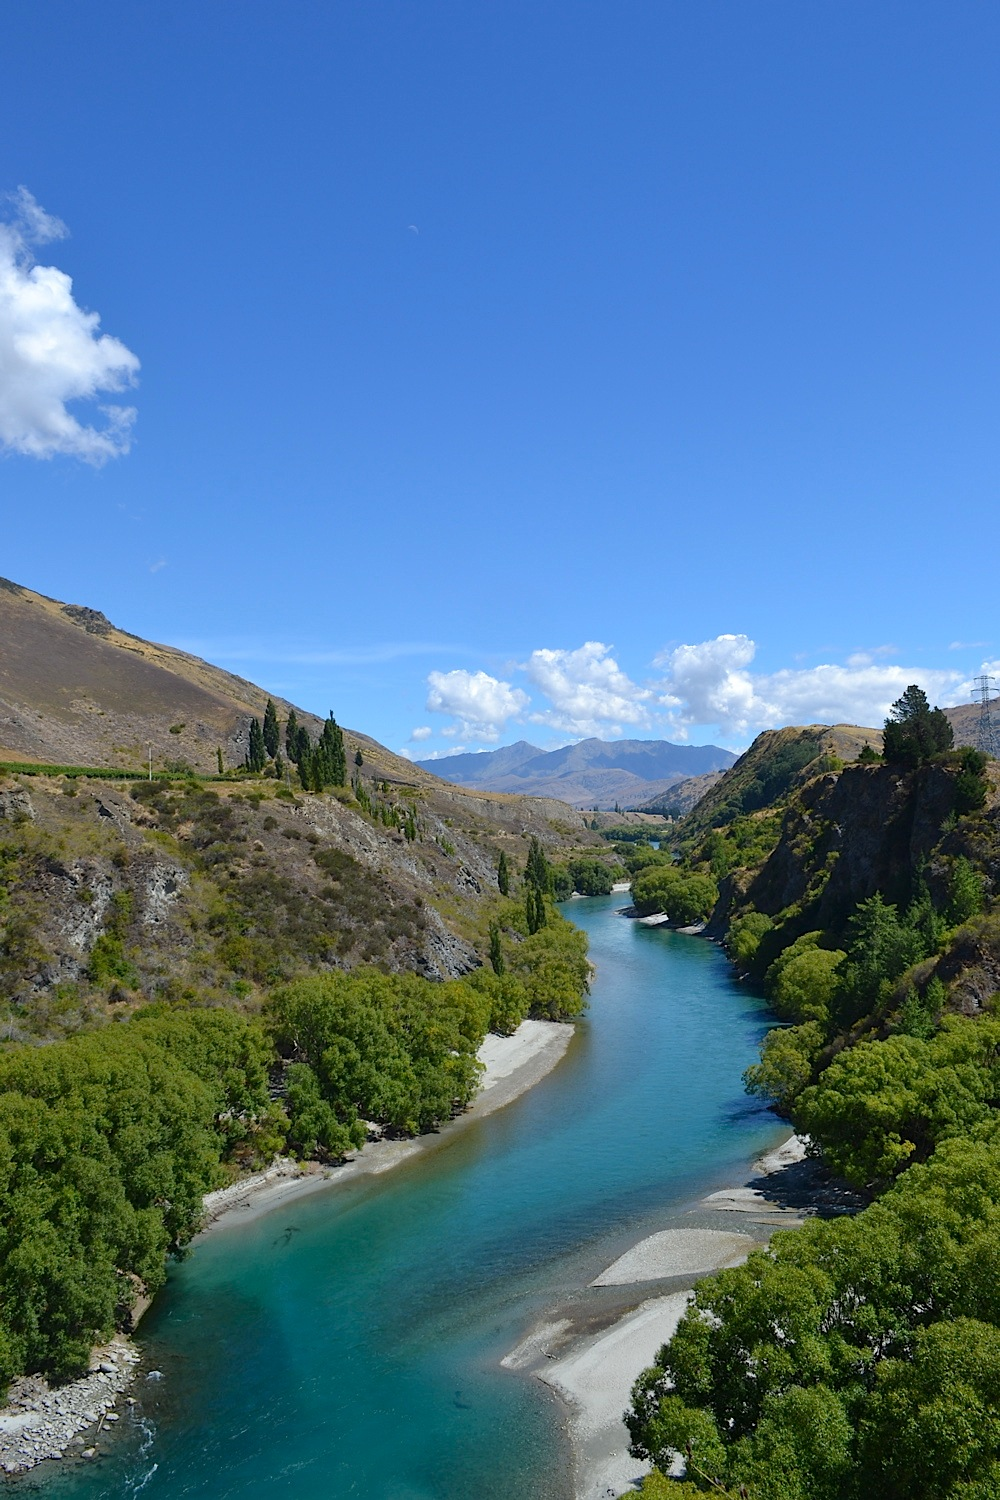 Kawarau River Central Otago New Zealand